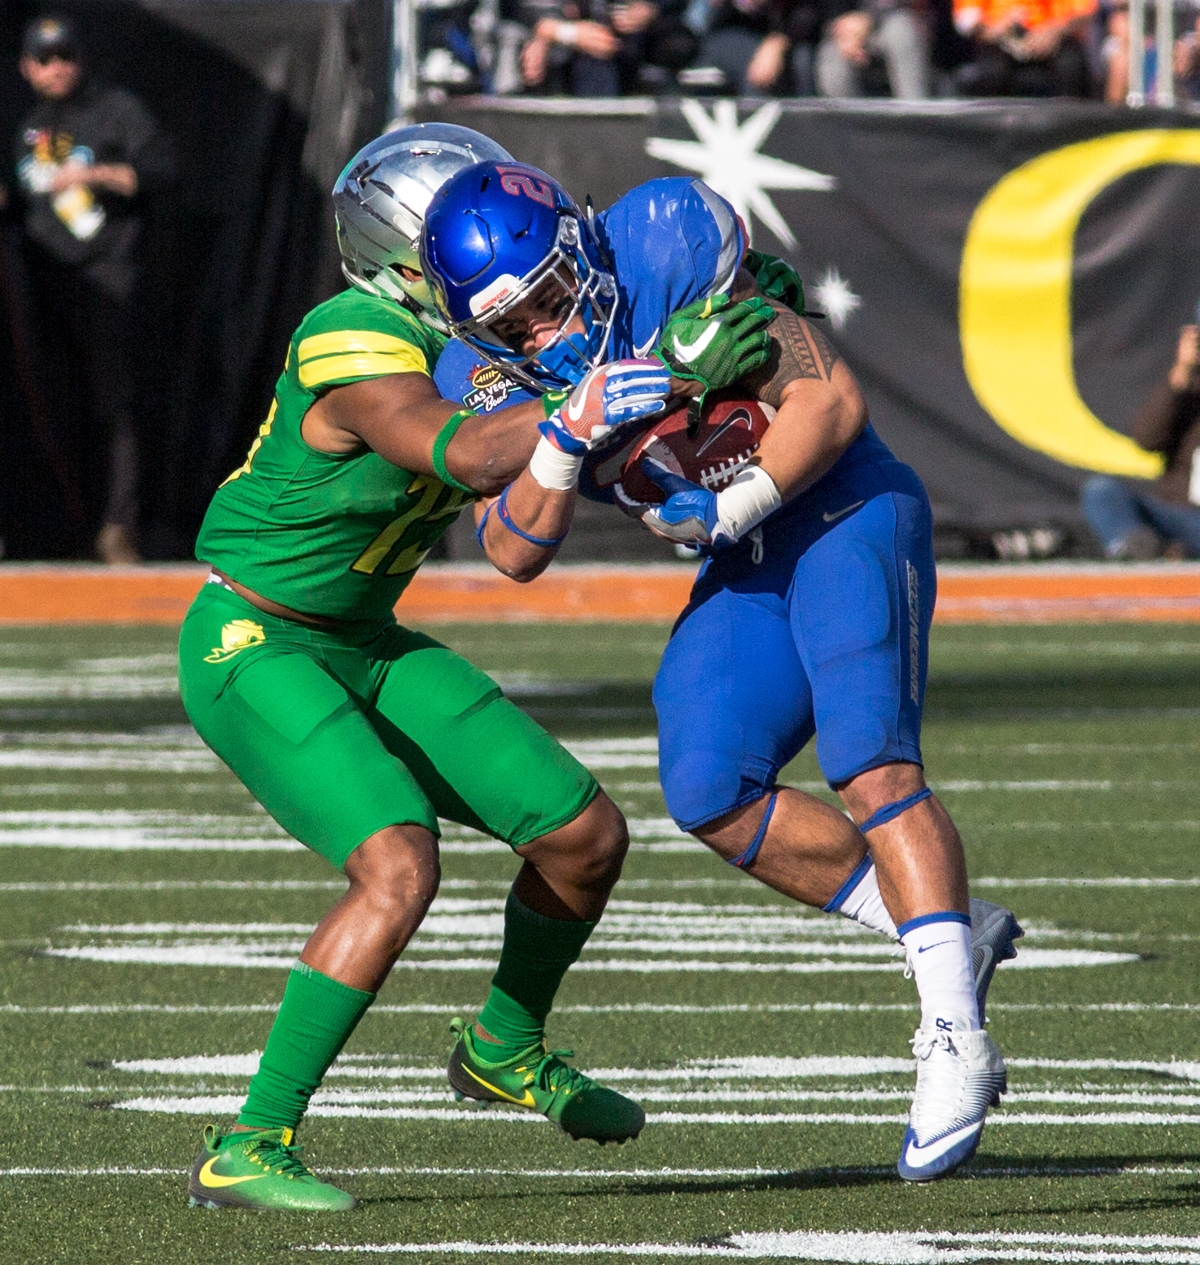 Boise State running back Ryan Wolpin (#21) tussles with an Oregon defender. The Boise State Broncos defeated the Oregon Ducks 38 to 28 in the 2017 Las Vegas Bowl at Sam Boyd Stadium in Las Vegas, Nevada on Saturday December 17, 2017. The Las Vegas Bowl served as the first test for Oregon's new Head Coach Mario Cristobal following the loss of former Head Coach Willie Taggart to Florida State University earlier this month. Photo by Ben Lonergan, Oregon News Lab